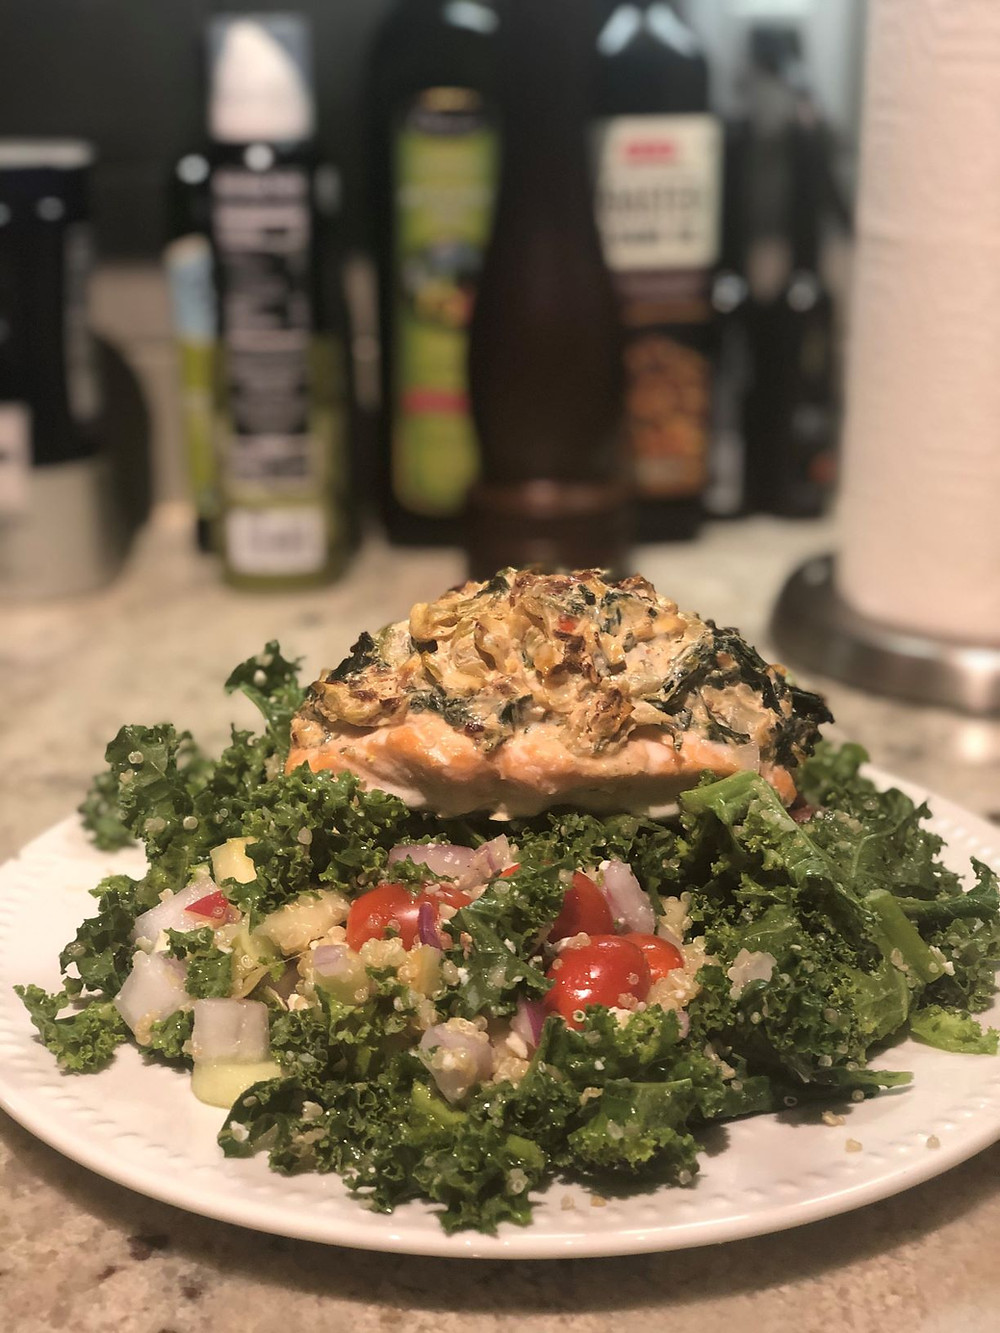 Spinach and Artichoke Stuffed Salmon with Kale and Quinoa Salad